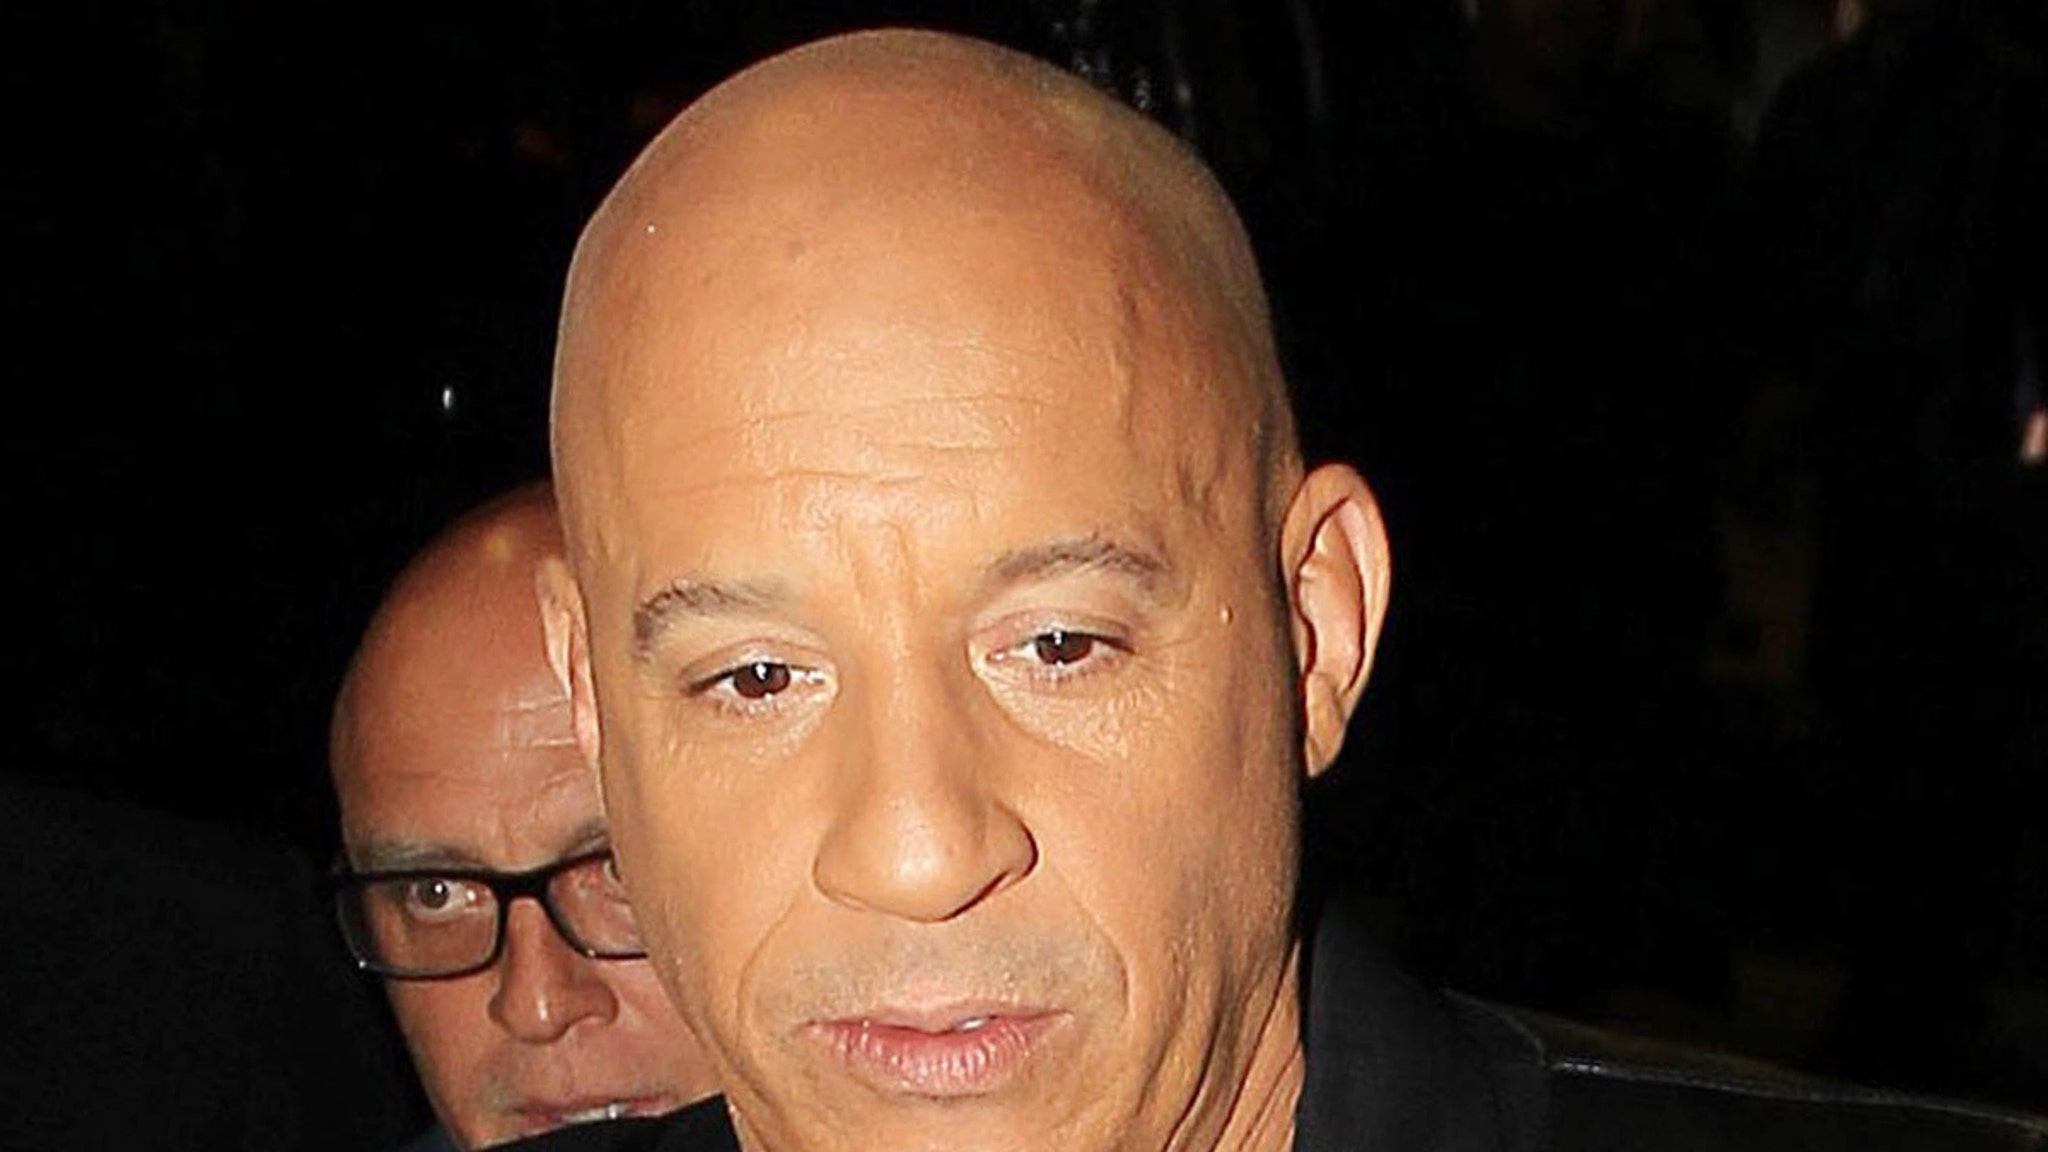 Vin Diesel's Dominican Republic Neighbors Say His Security is Abusive